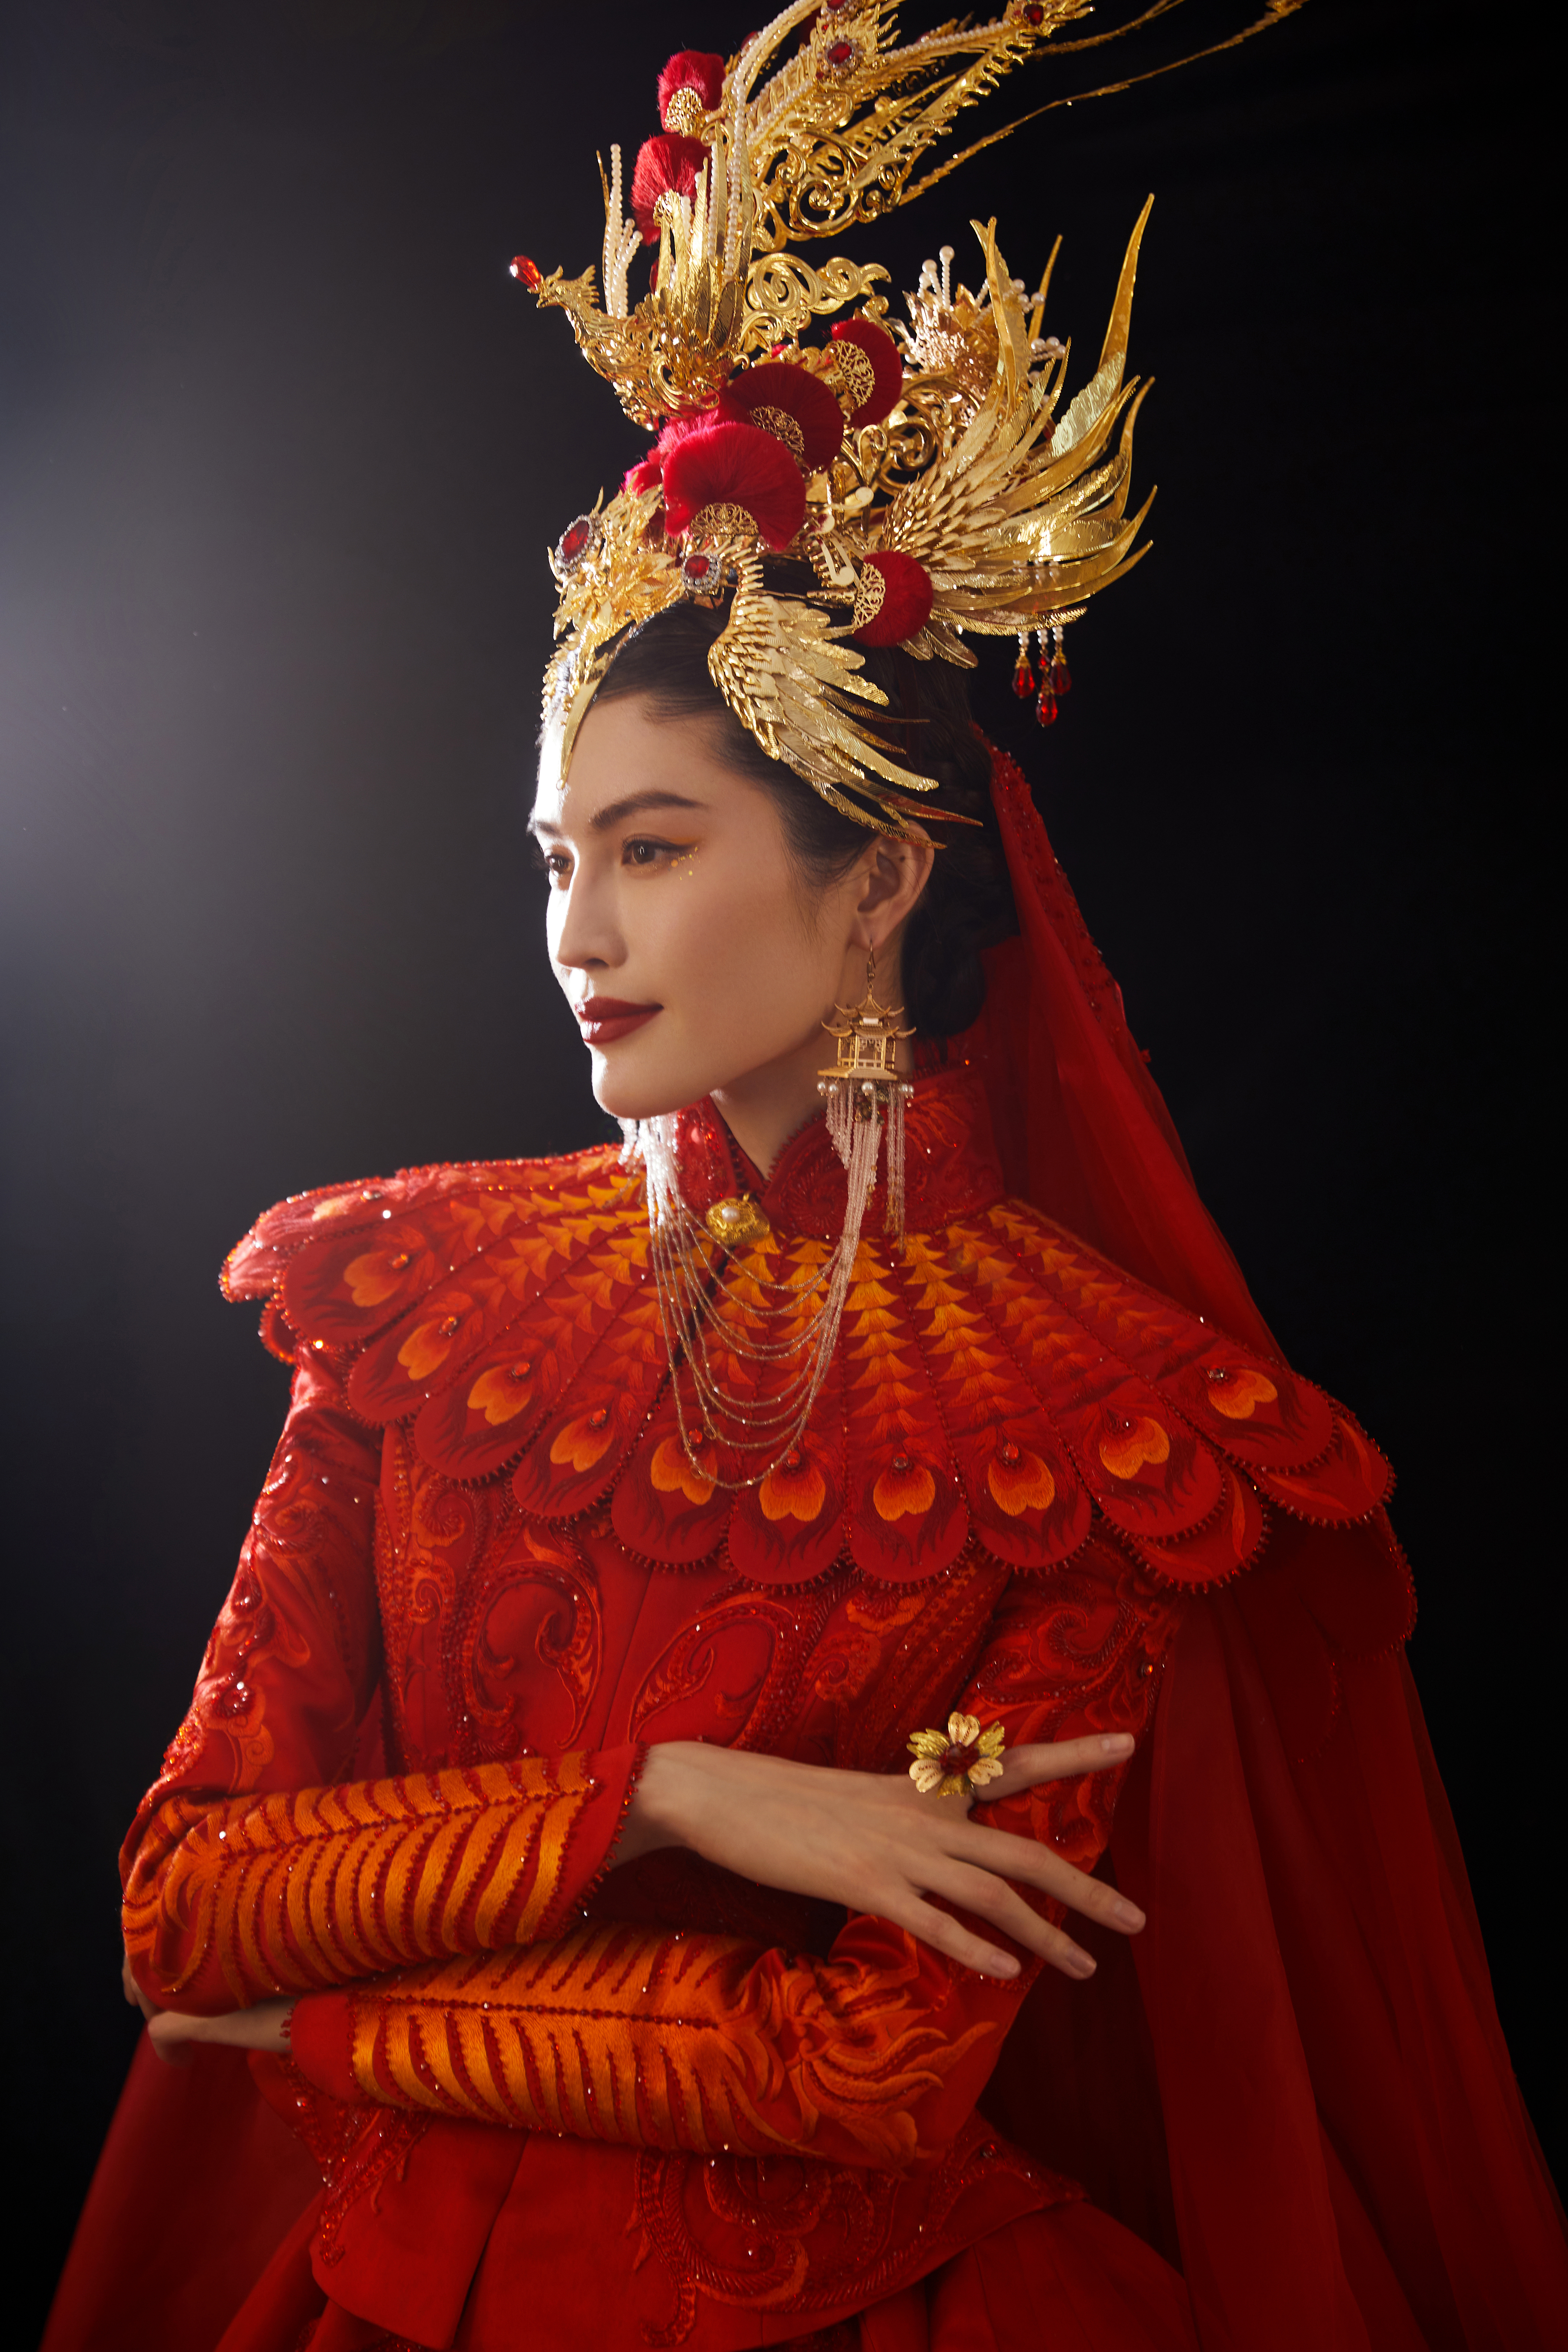 Model Sui He wears a look inspired by Chinese elements for the Spring Festival Gala 2021.